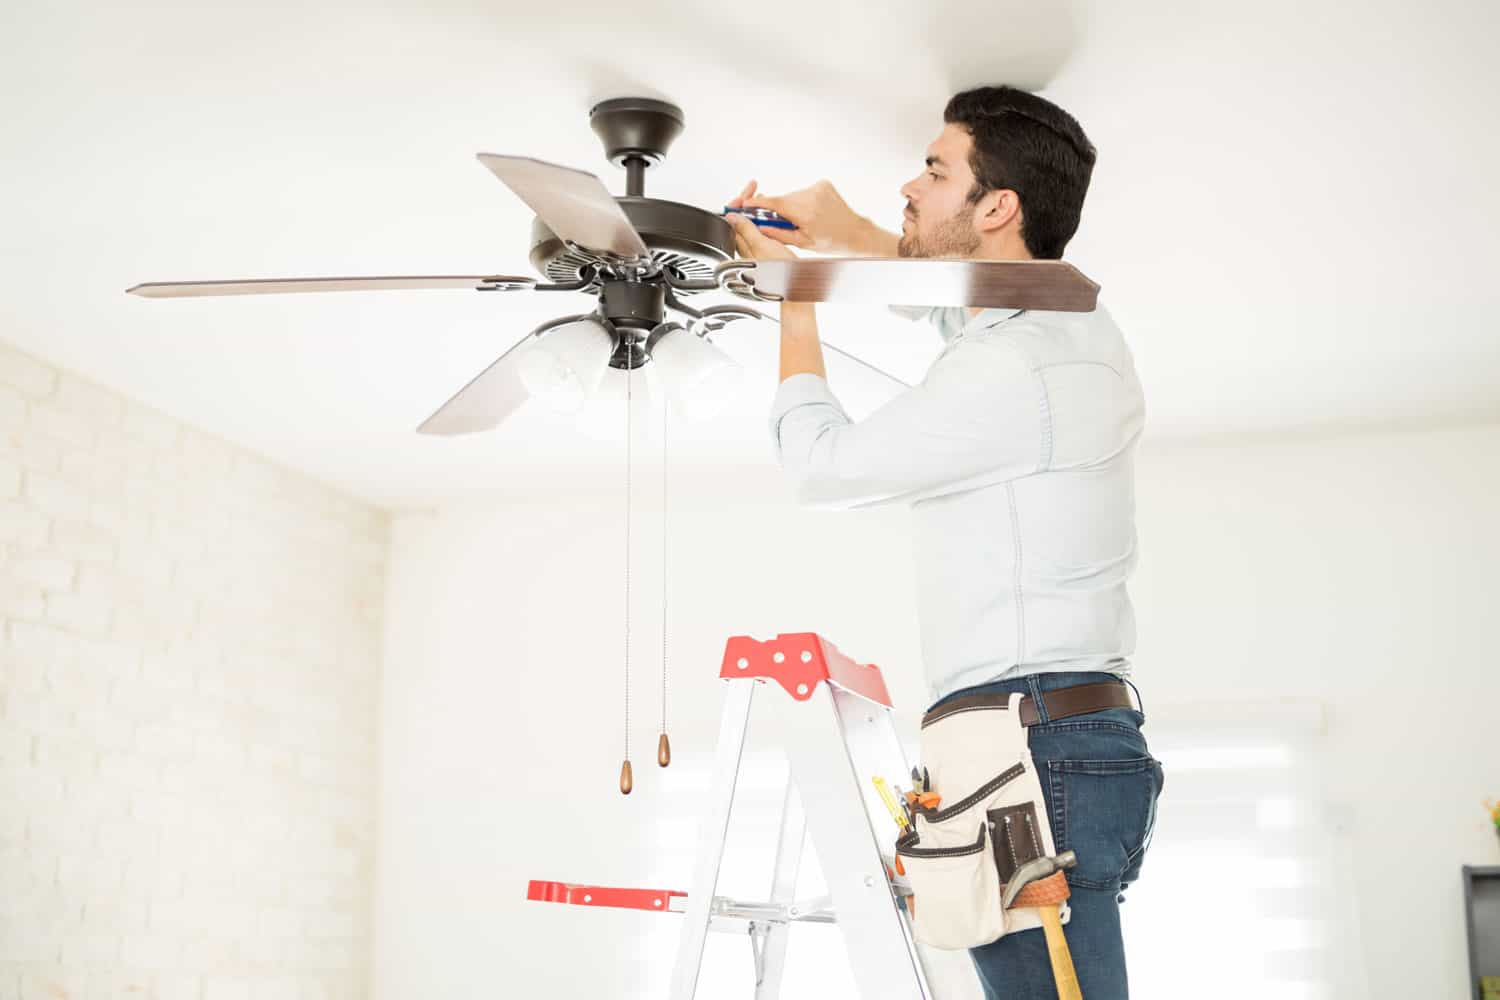 A worker doing repair work on the ceiling fan